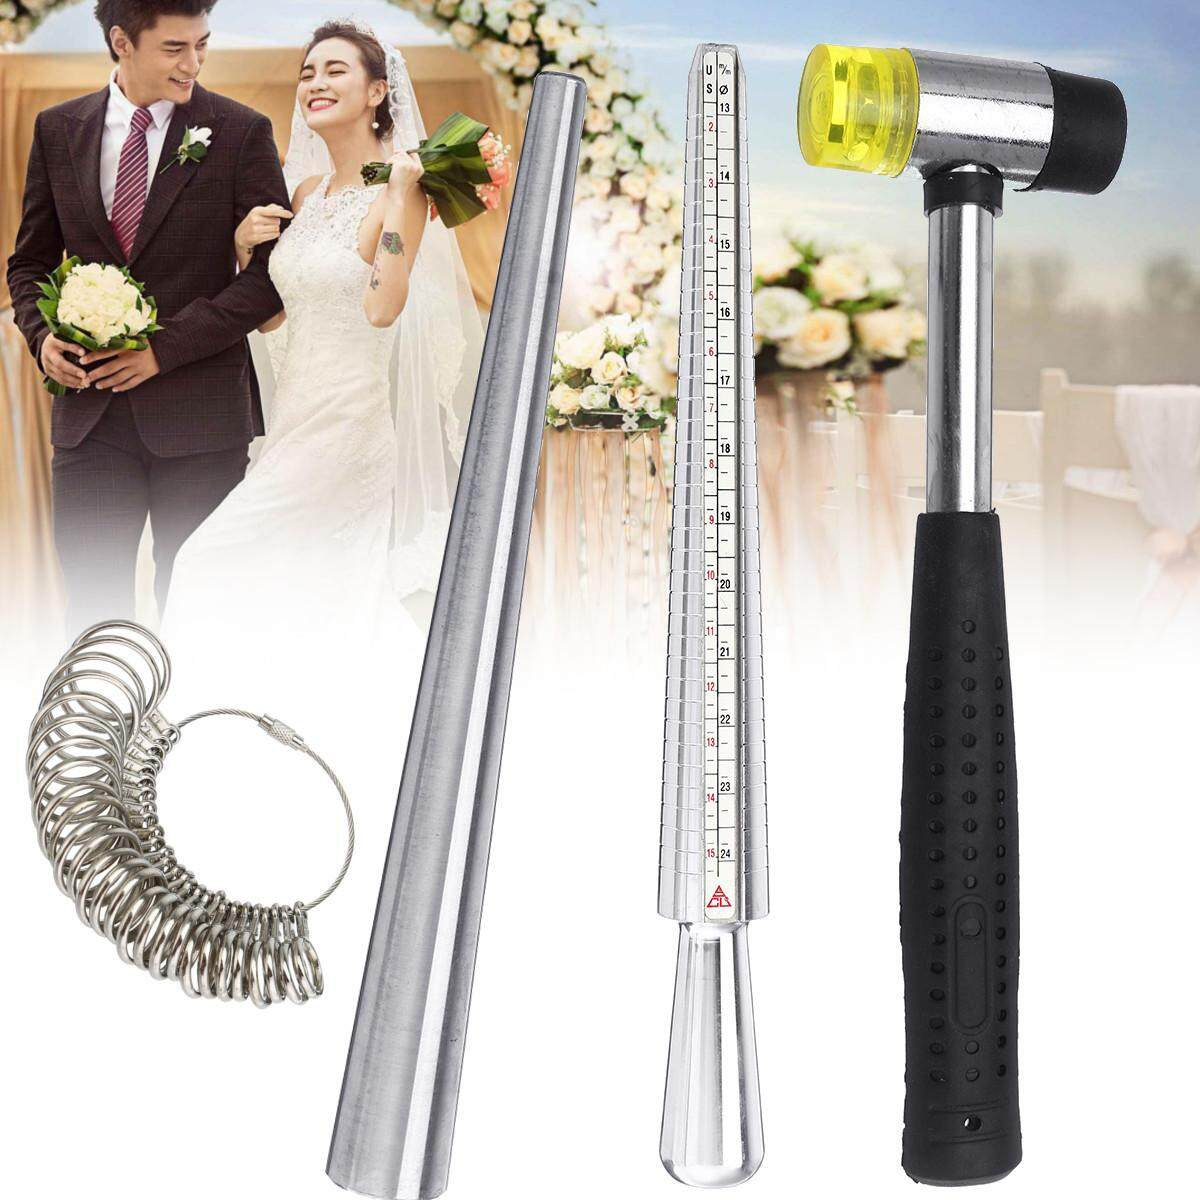 Metal Ring Sizer Gauge Stretcher Enlarger Jewelry Sizing Tool Sets Rubber Hammer By Moonbeam.